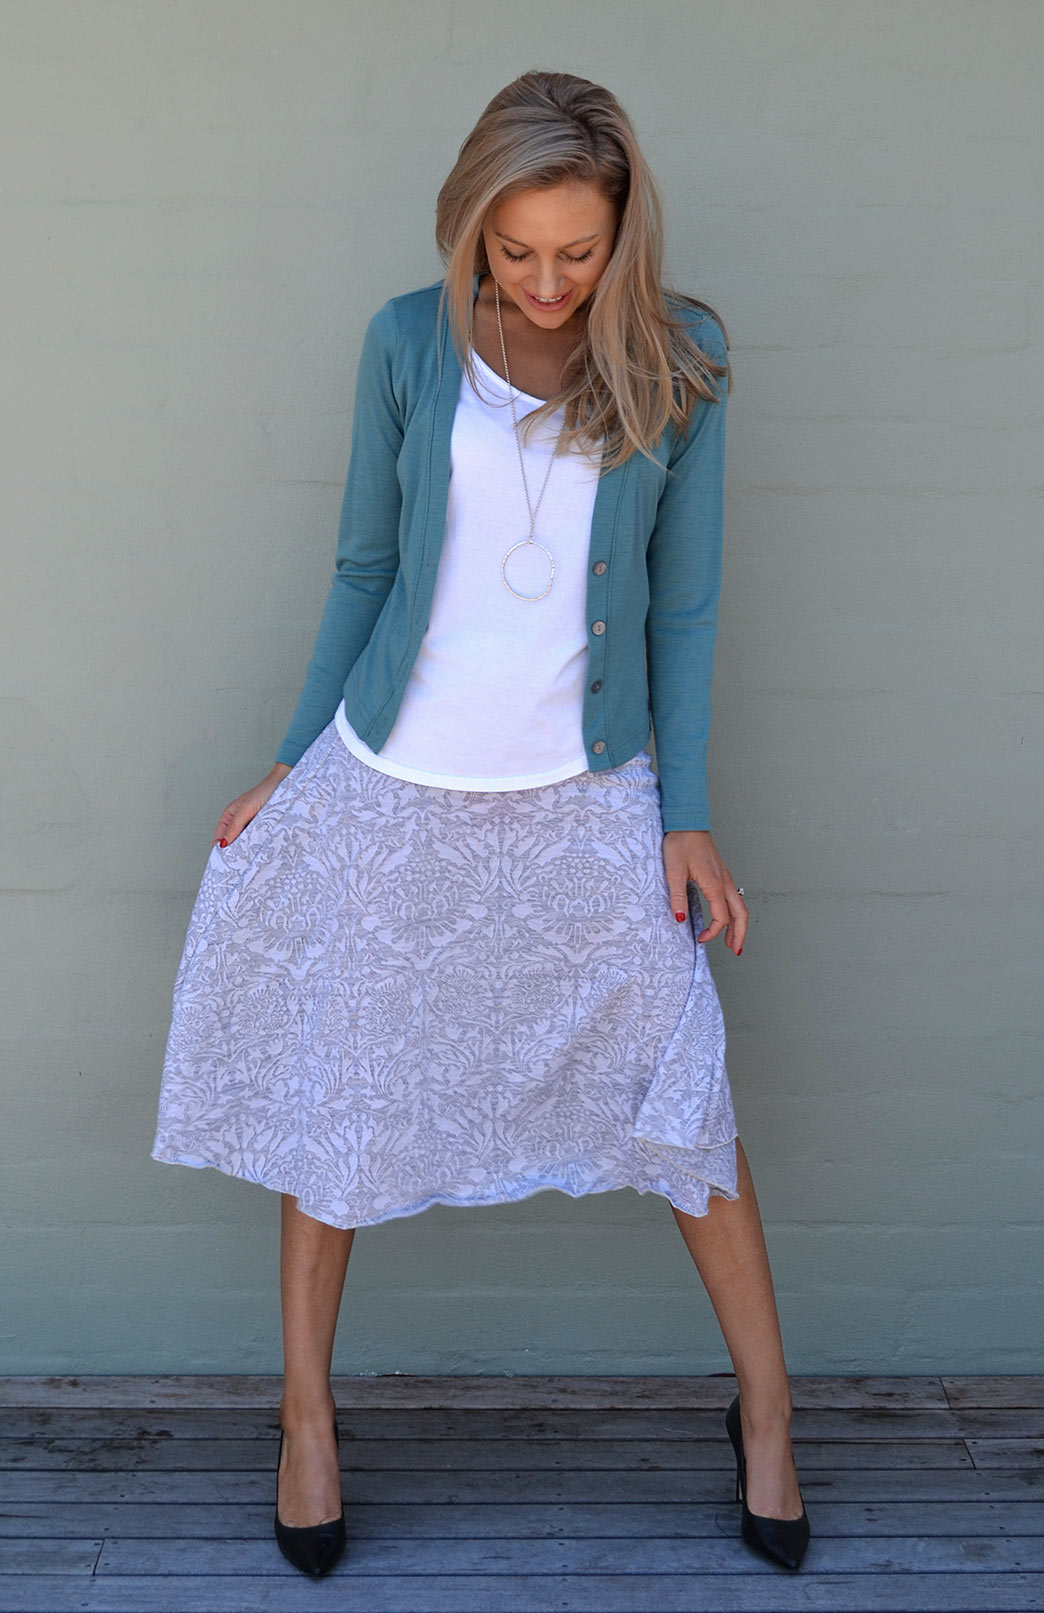 Twirl Skirt (Soft Grey and White Floral;Size 6)